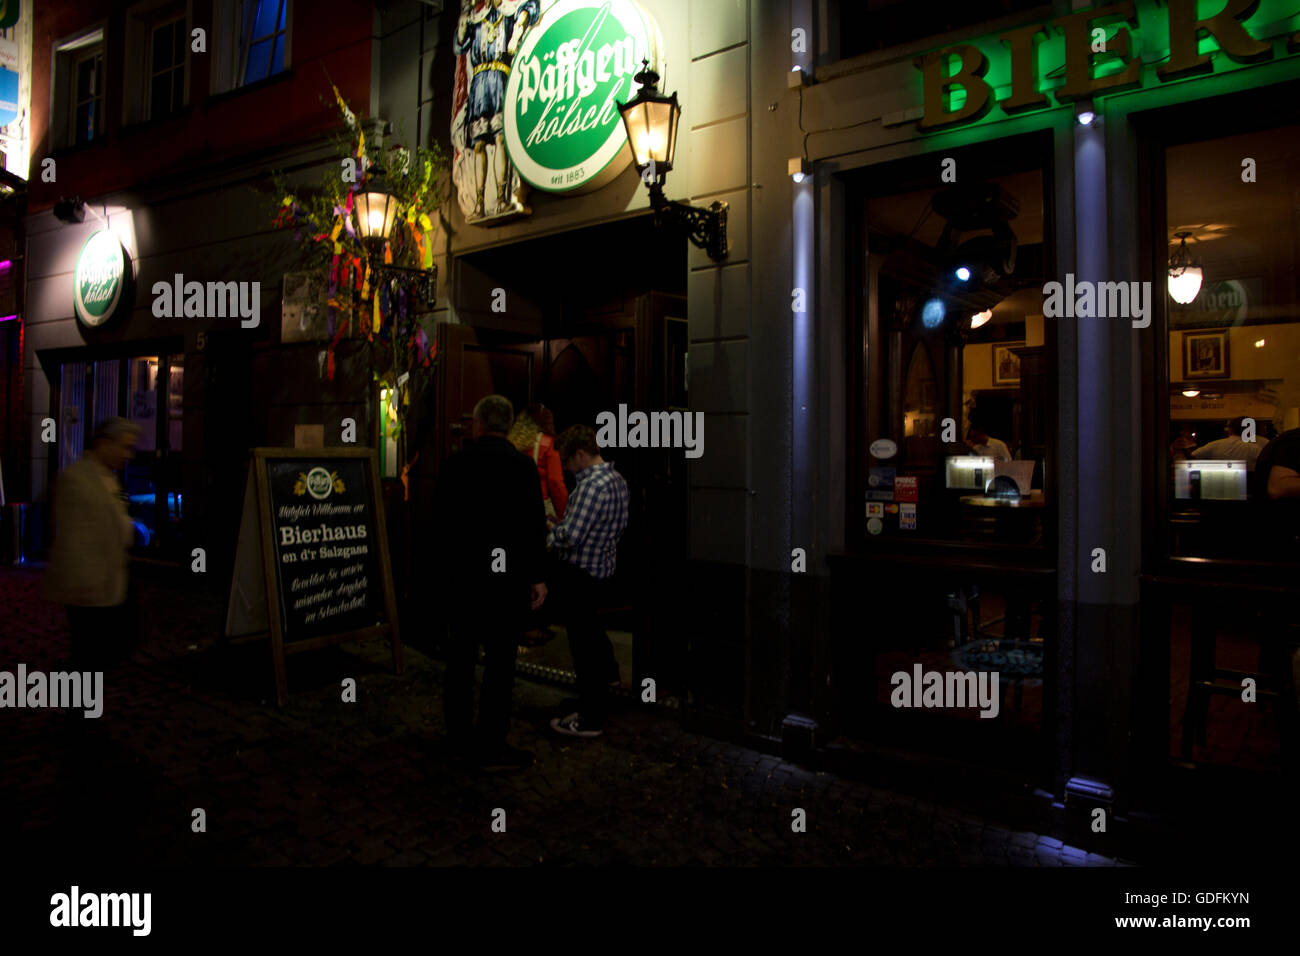 Paffgen Kolsch is one of Old Town Cologne's favorite brew houses serving Kolsch, a light, crisp beer brewed - Stock Image